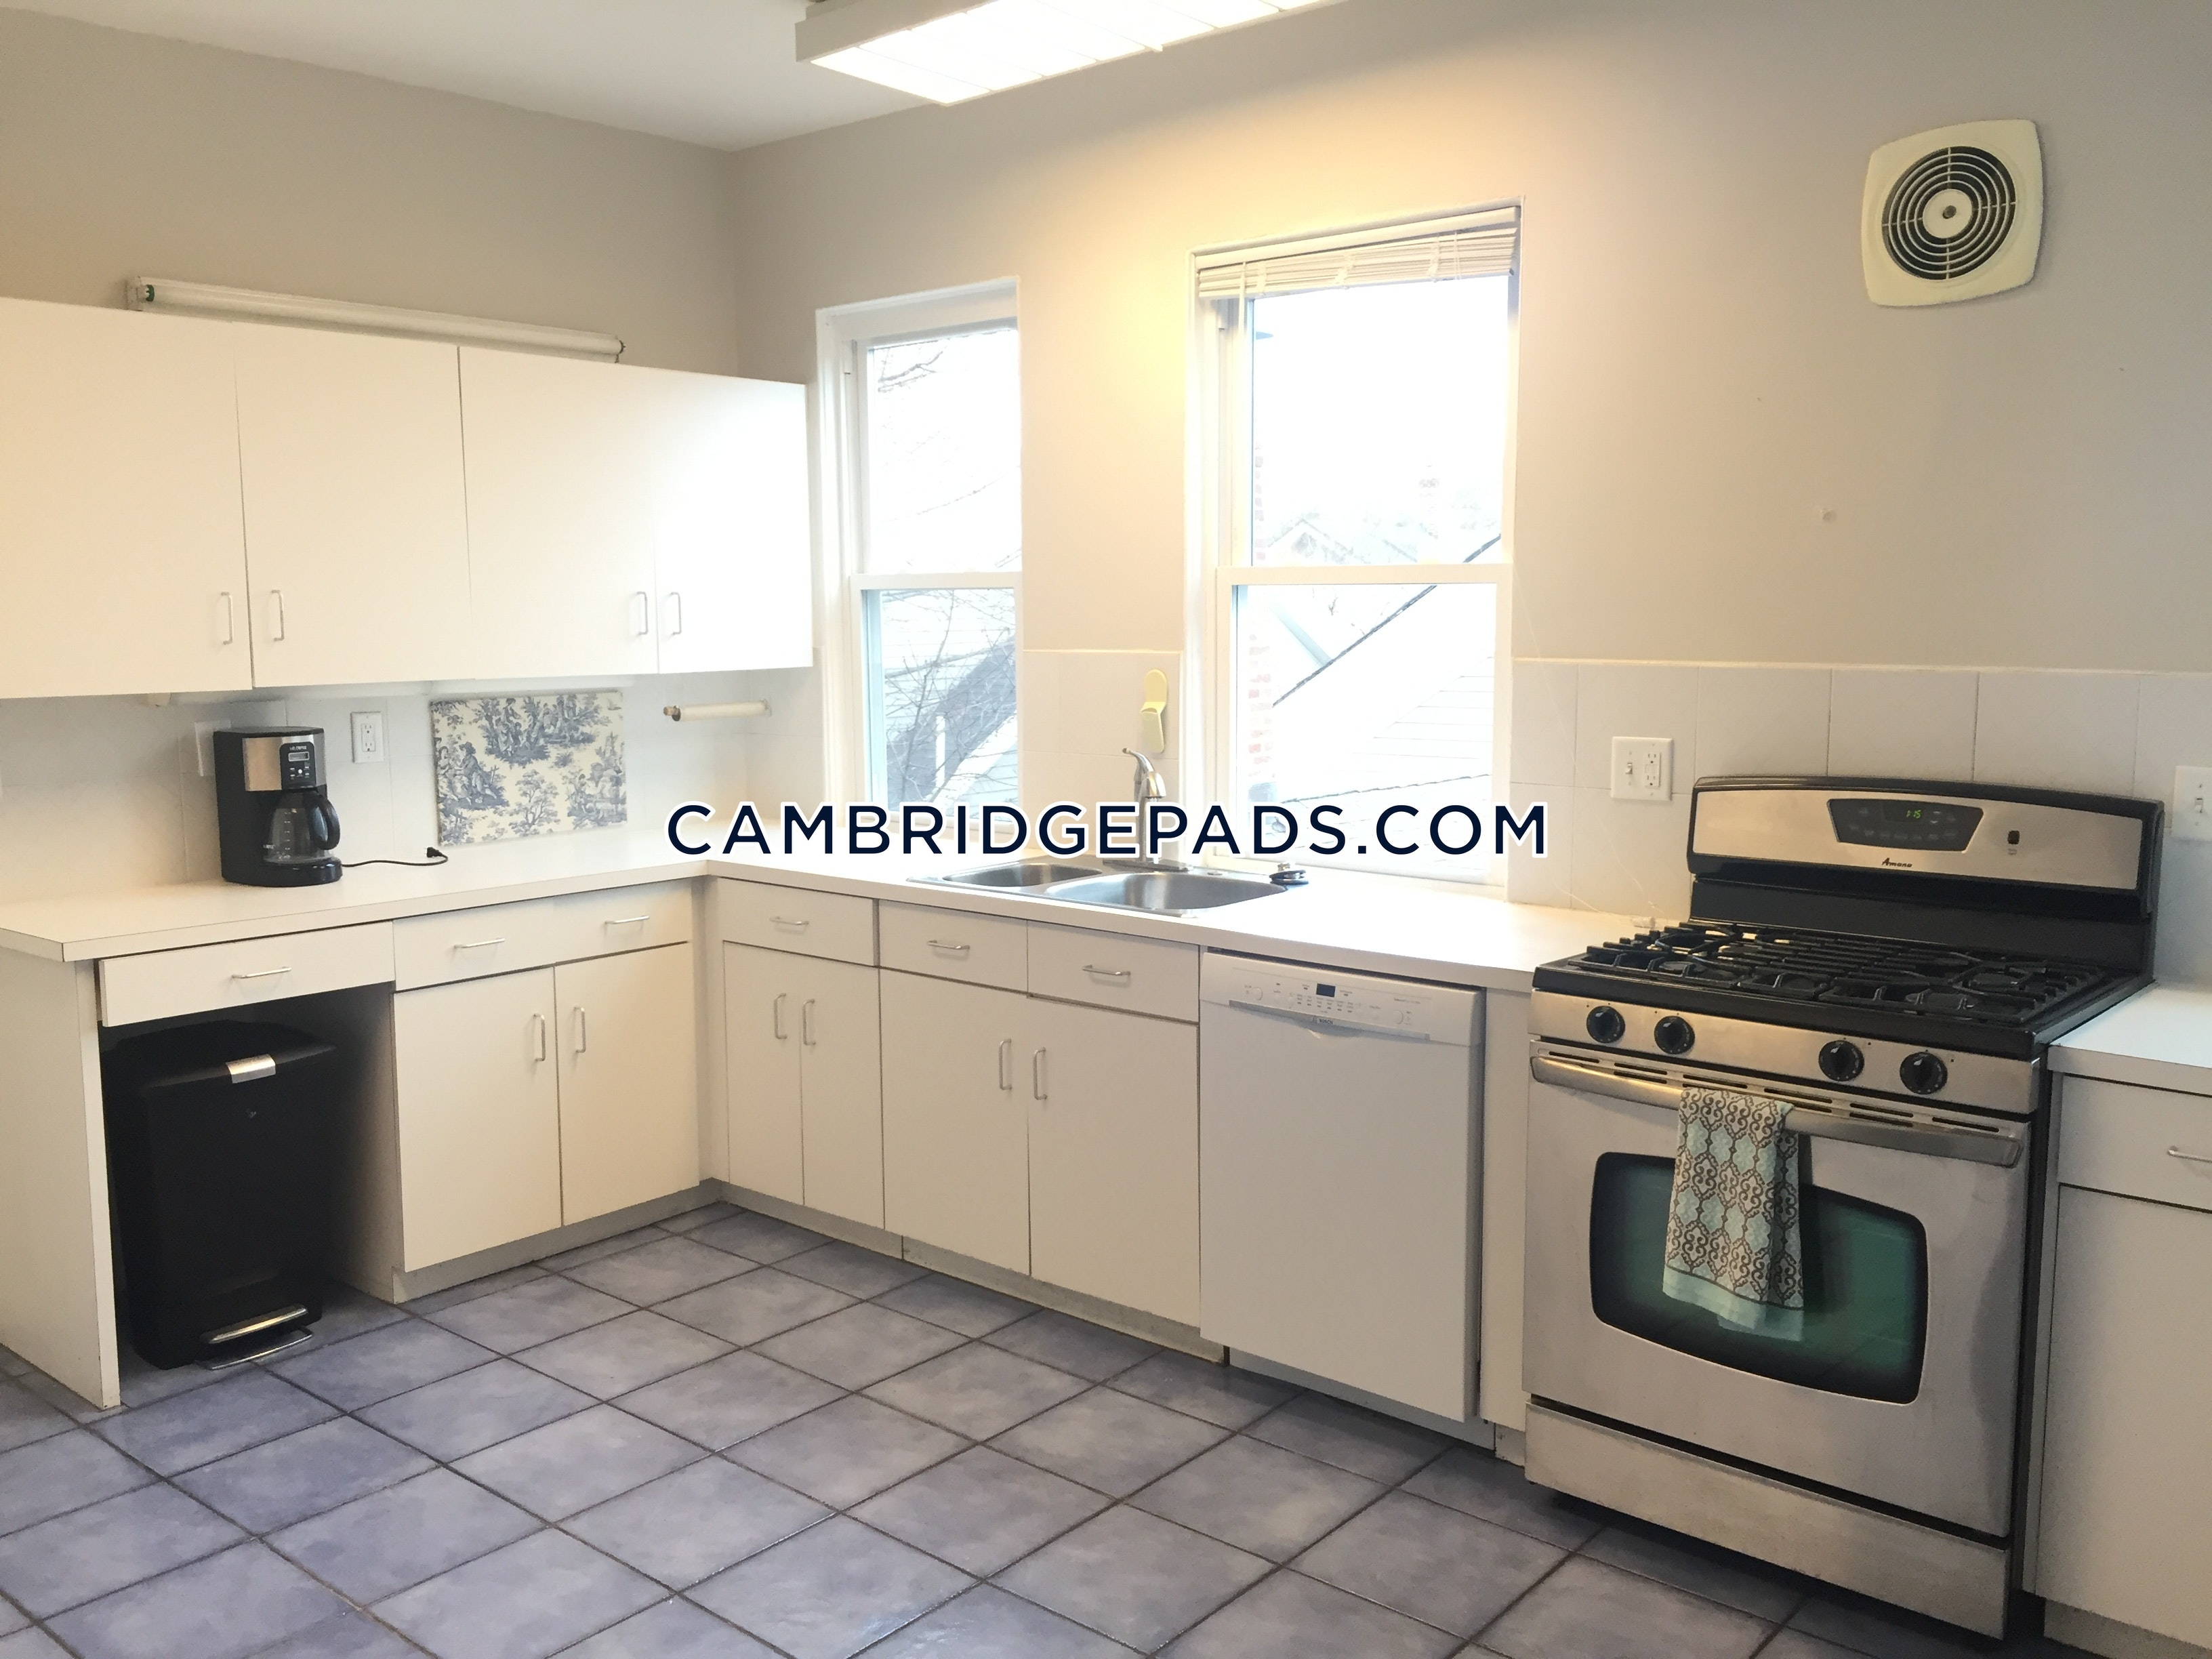 CAMBRIDGE - HARVARD SQUARE - $9,800